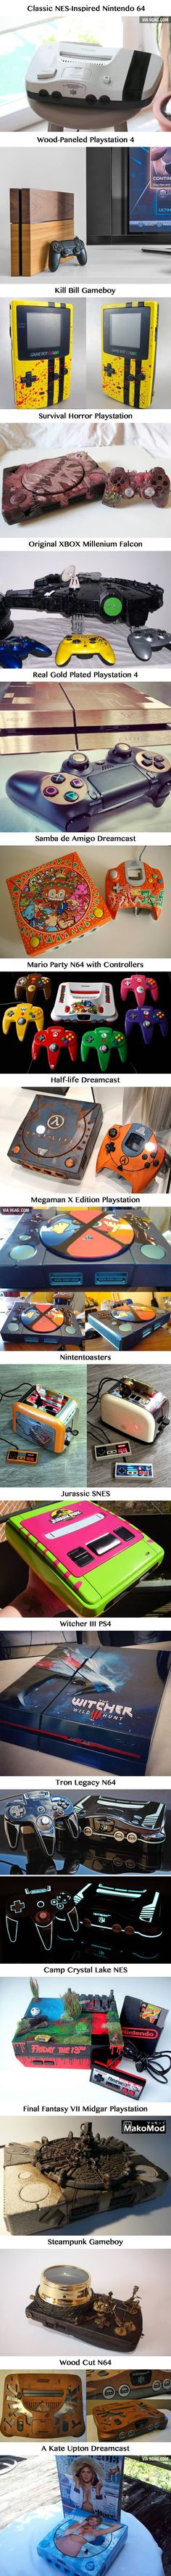 19 Most Goddamn Sexy Custom Consoles You've Ever Seen - 9GAG